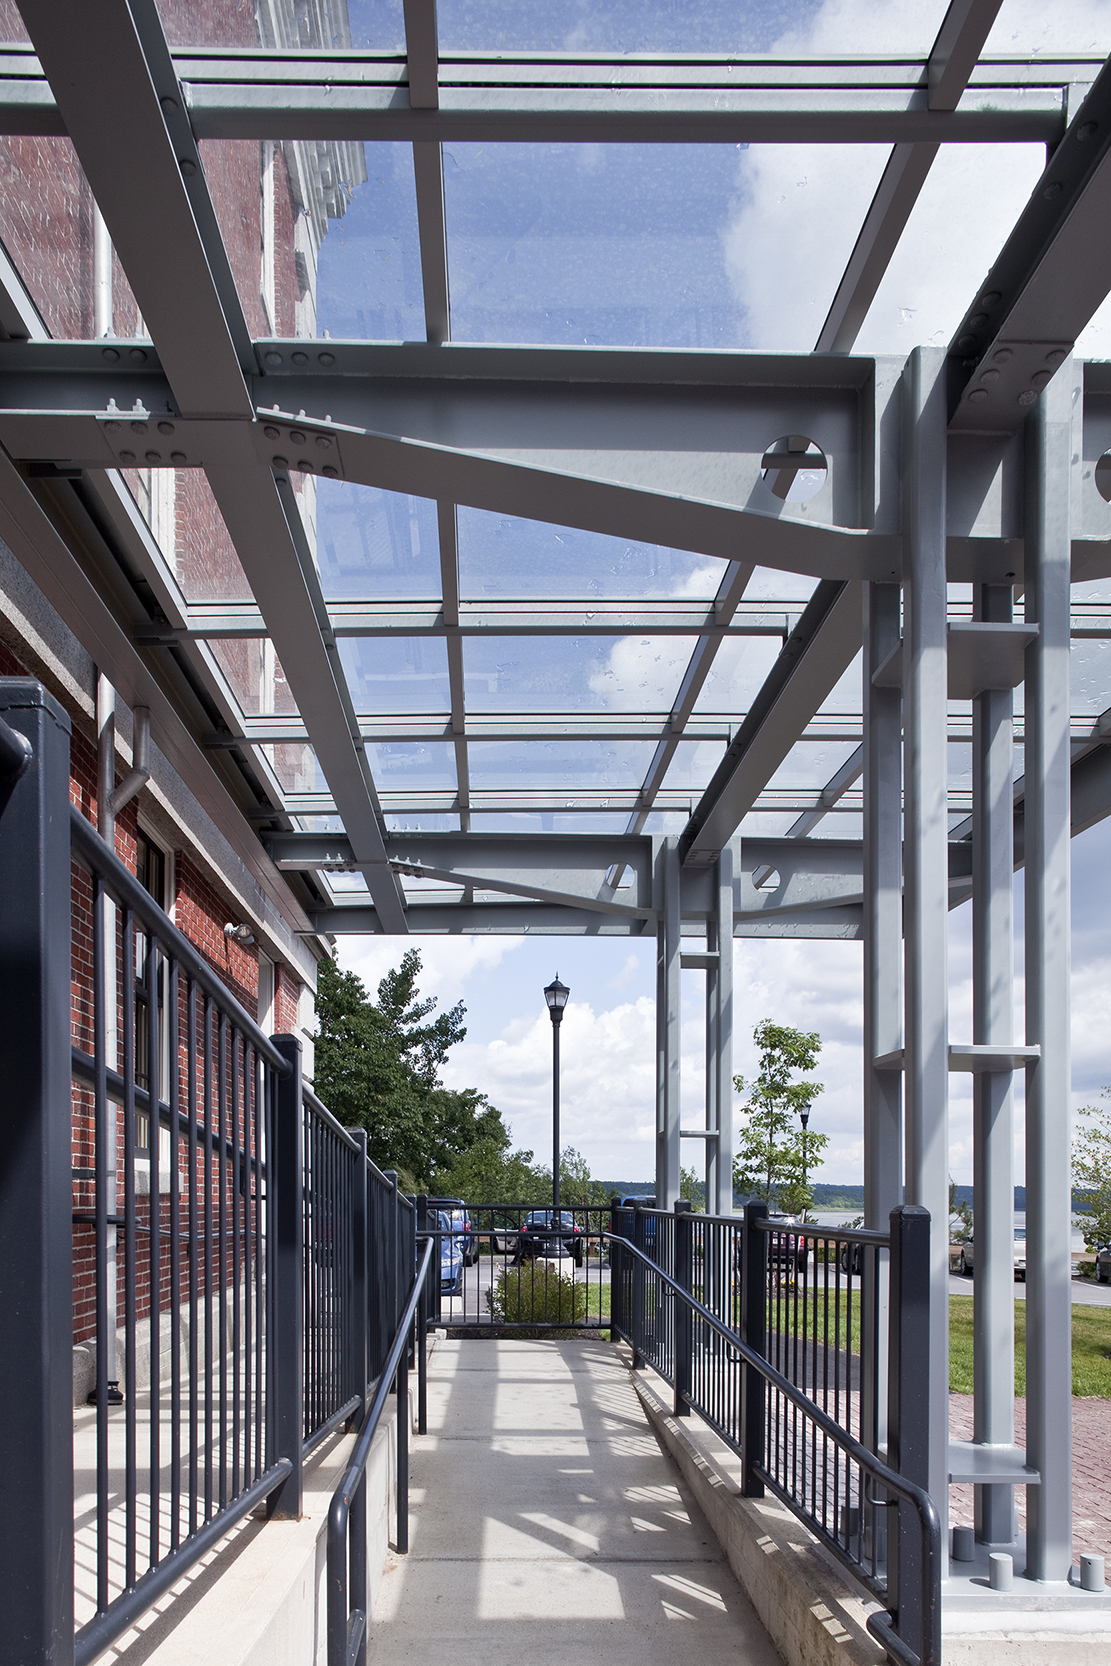 The steel-and-glass canopies provide a modern note against the traditional brick.